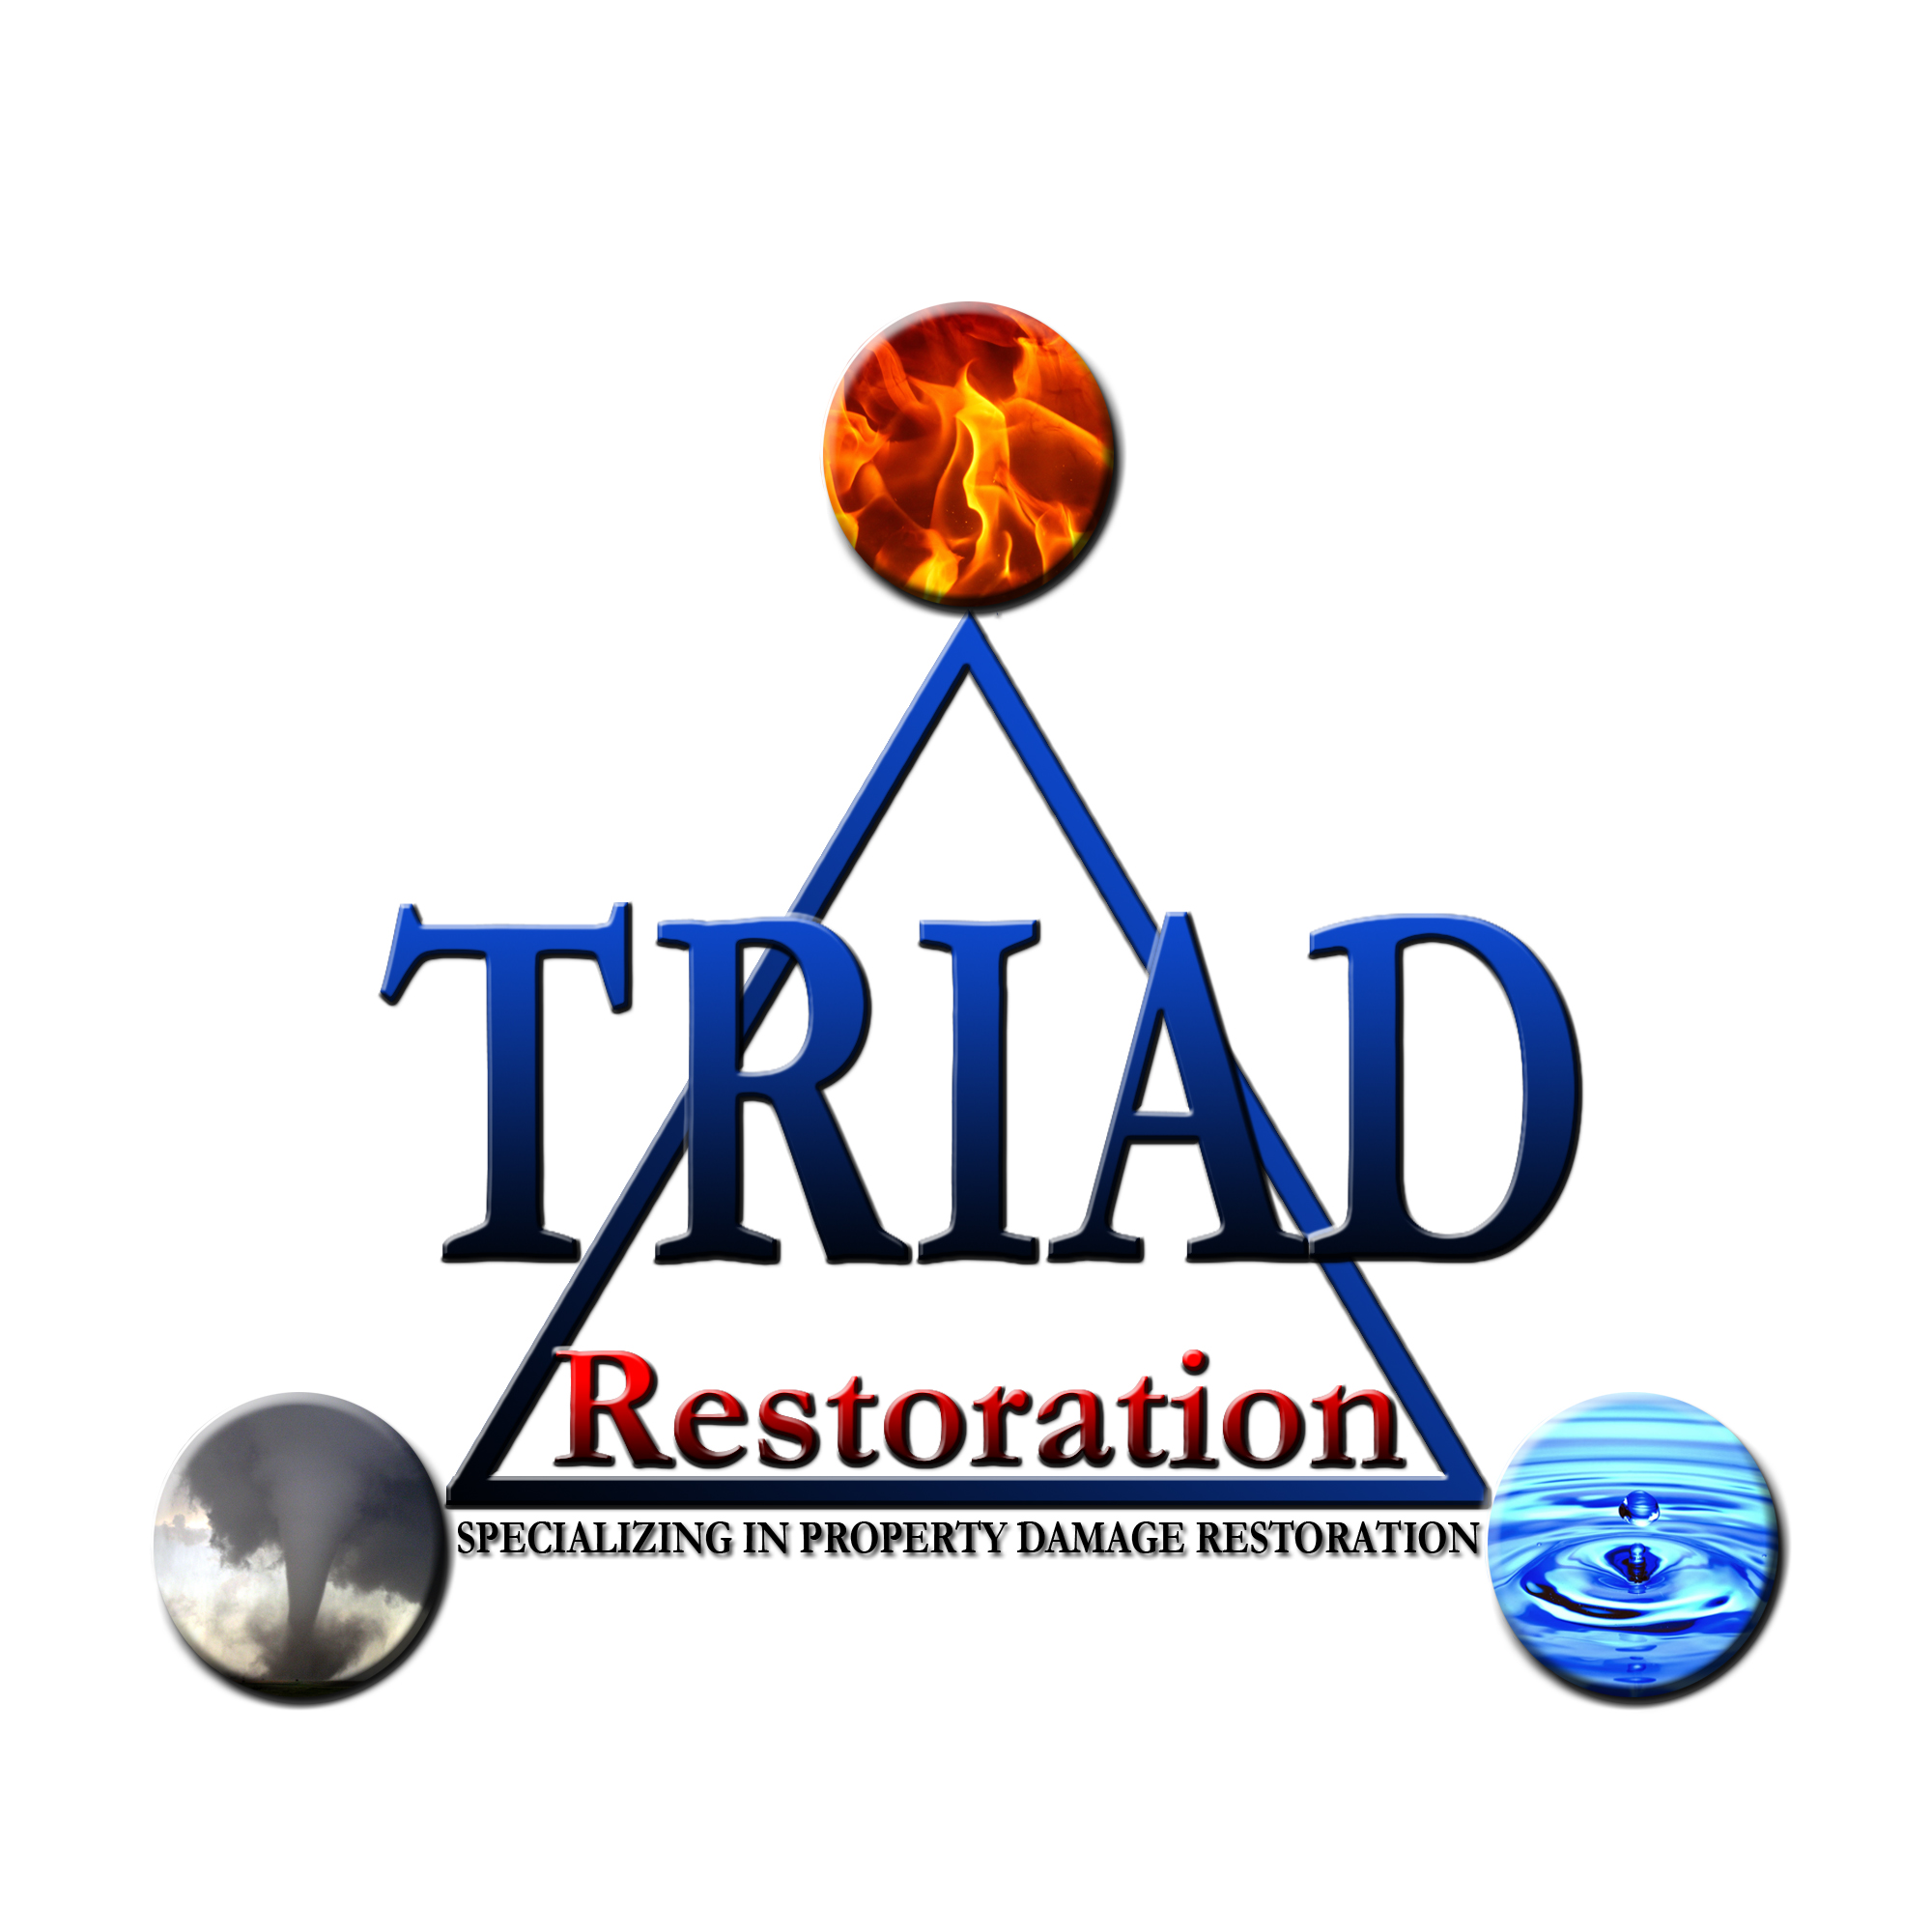 Triad Restoration Inc.